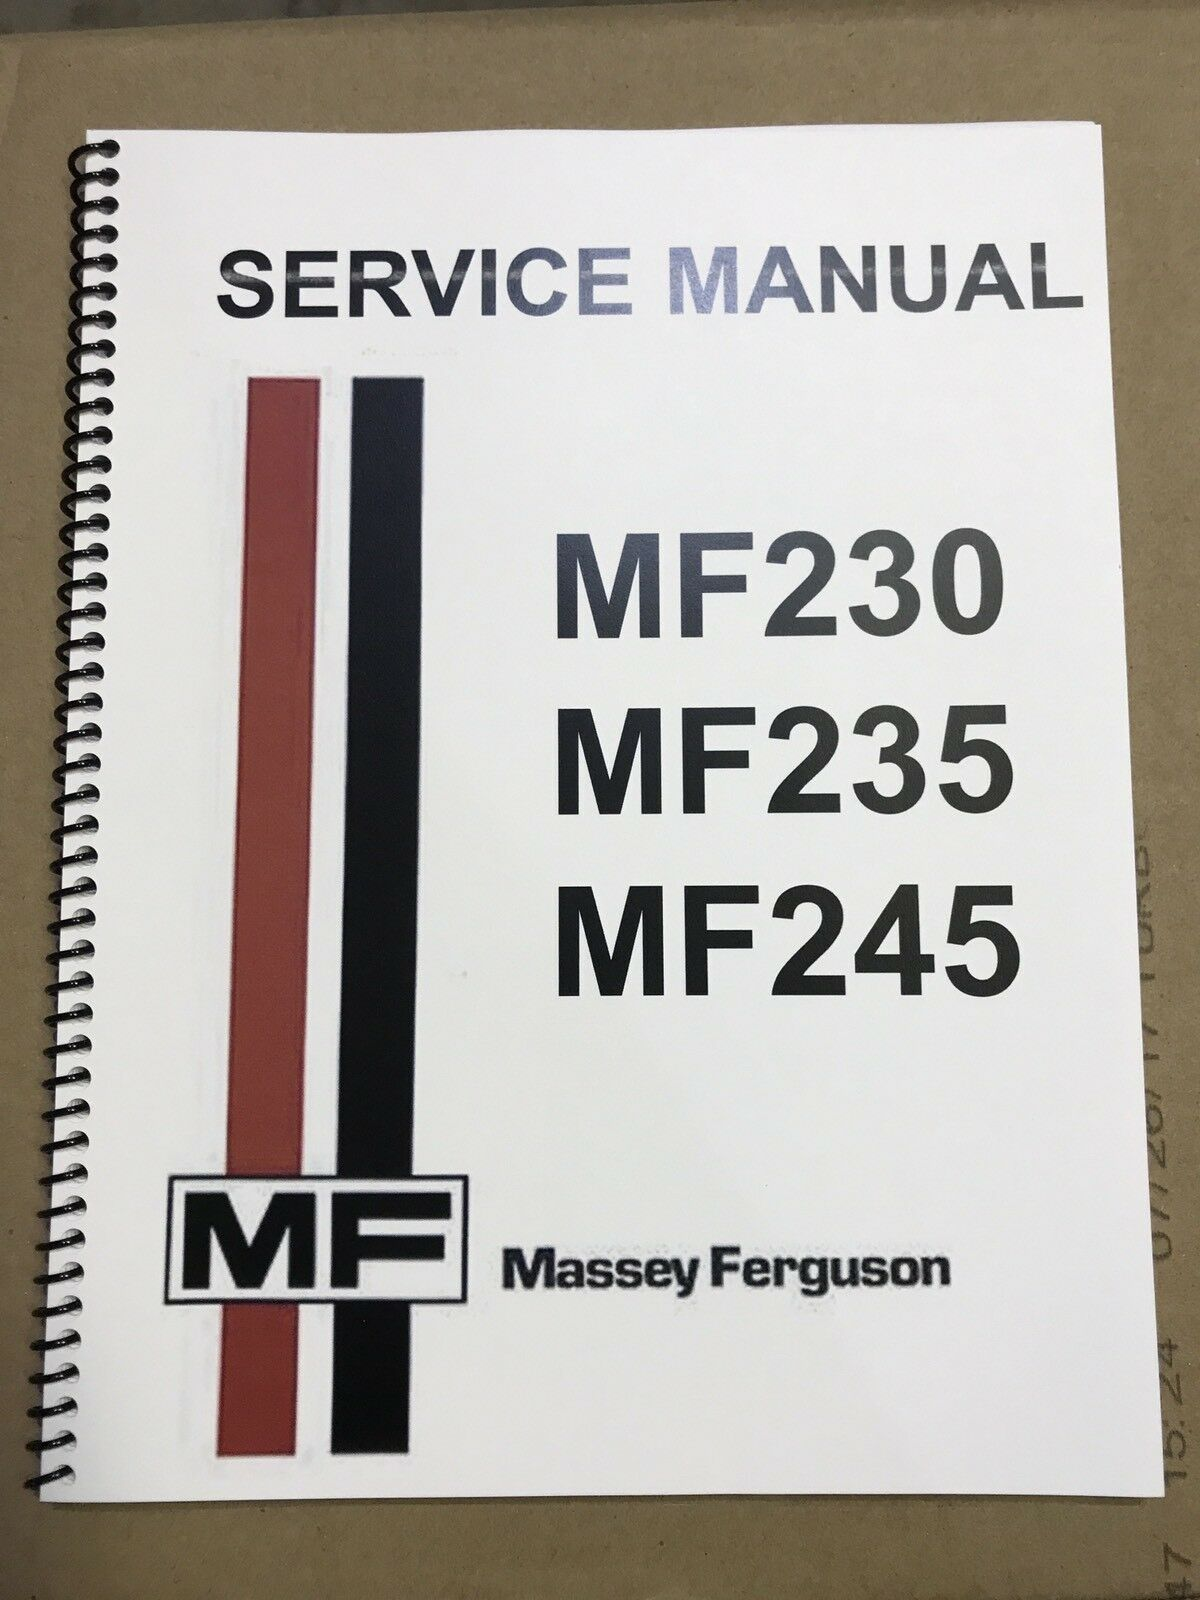 245 Massey Ferguson Tractor Technical Service Shop Repair Manual MF245 MF  245 1 of 4Only 3 available See More